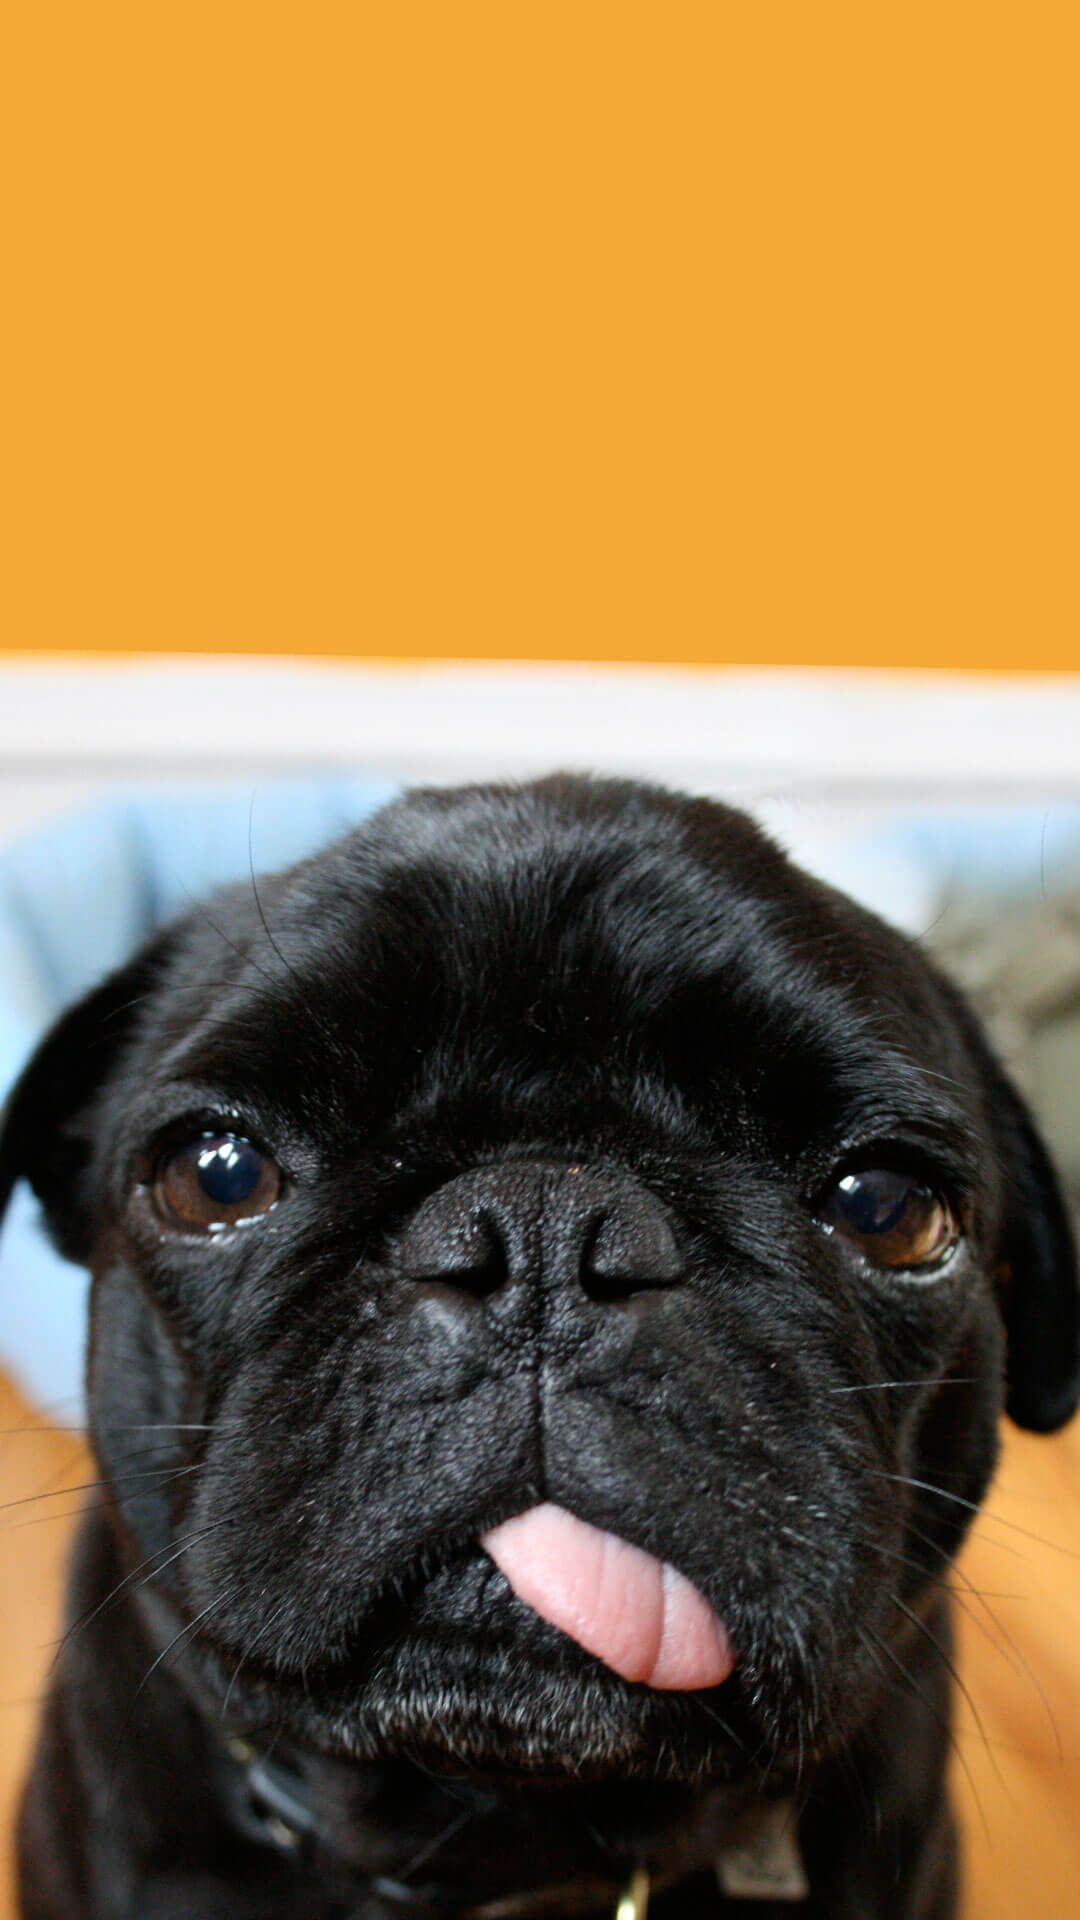 Cute Black Pug Wallpaper iPhone HD | Animal Wallpaper for iPhone ...